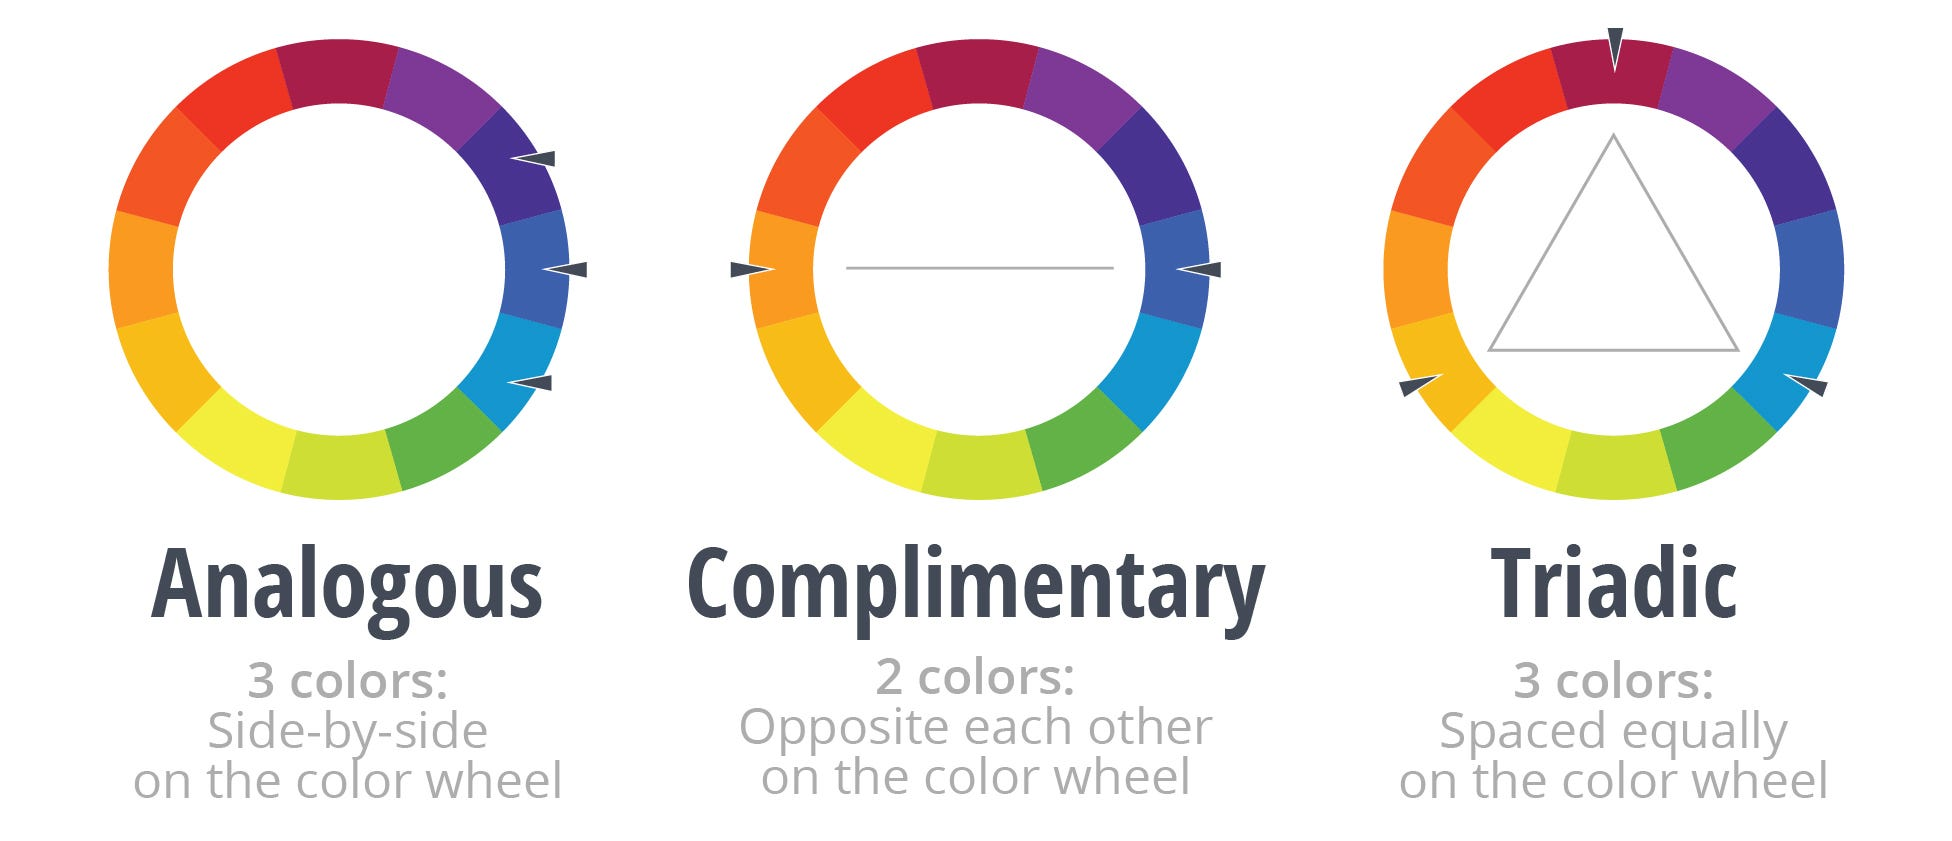 examples of color schemes on a color wheel